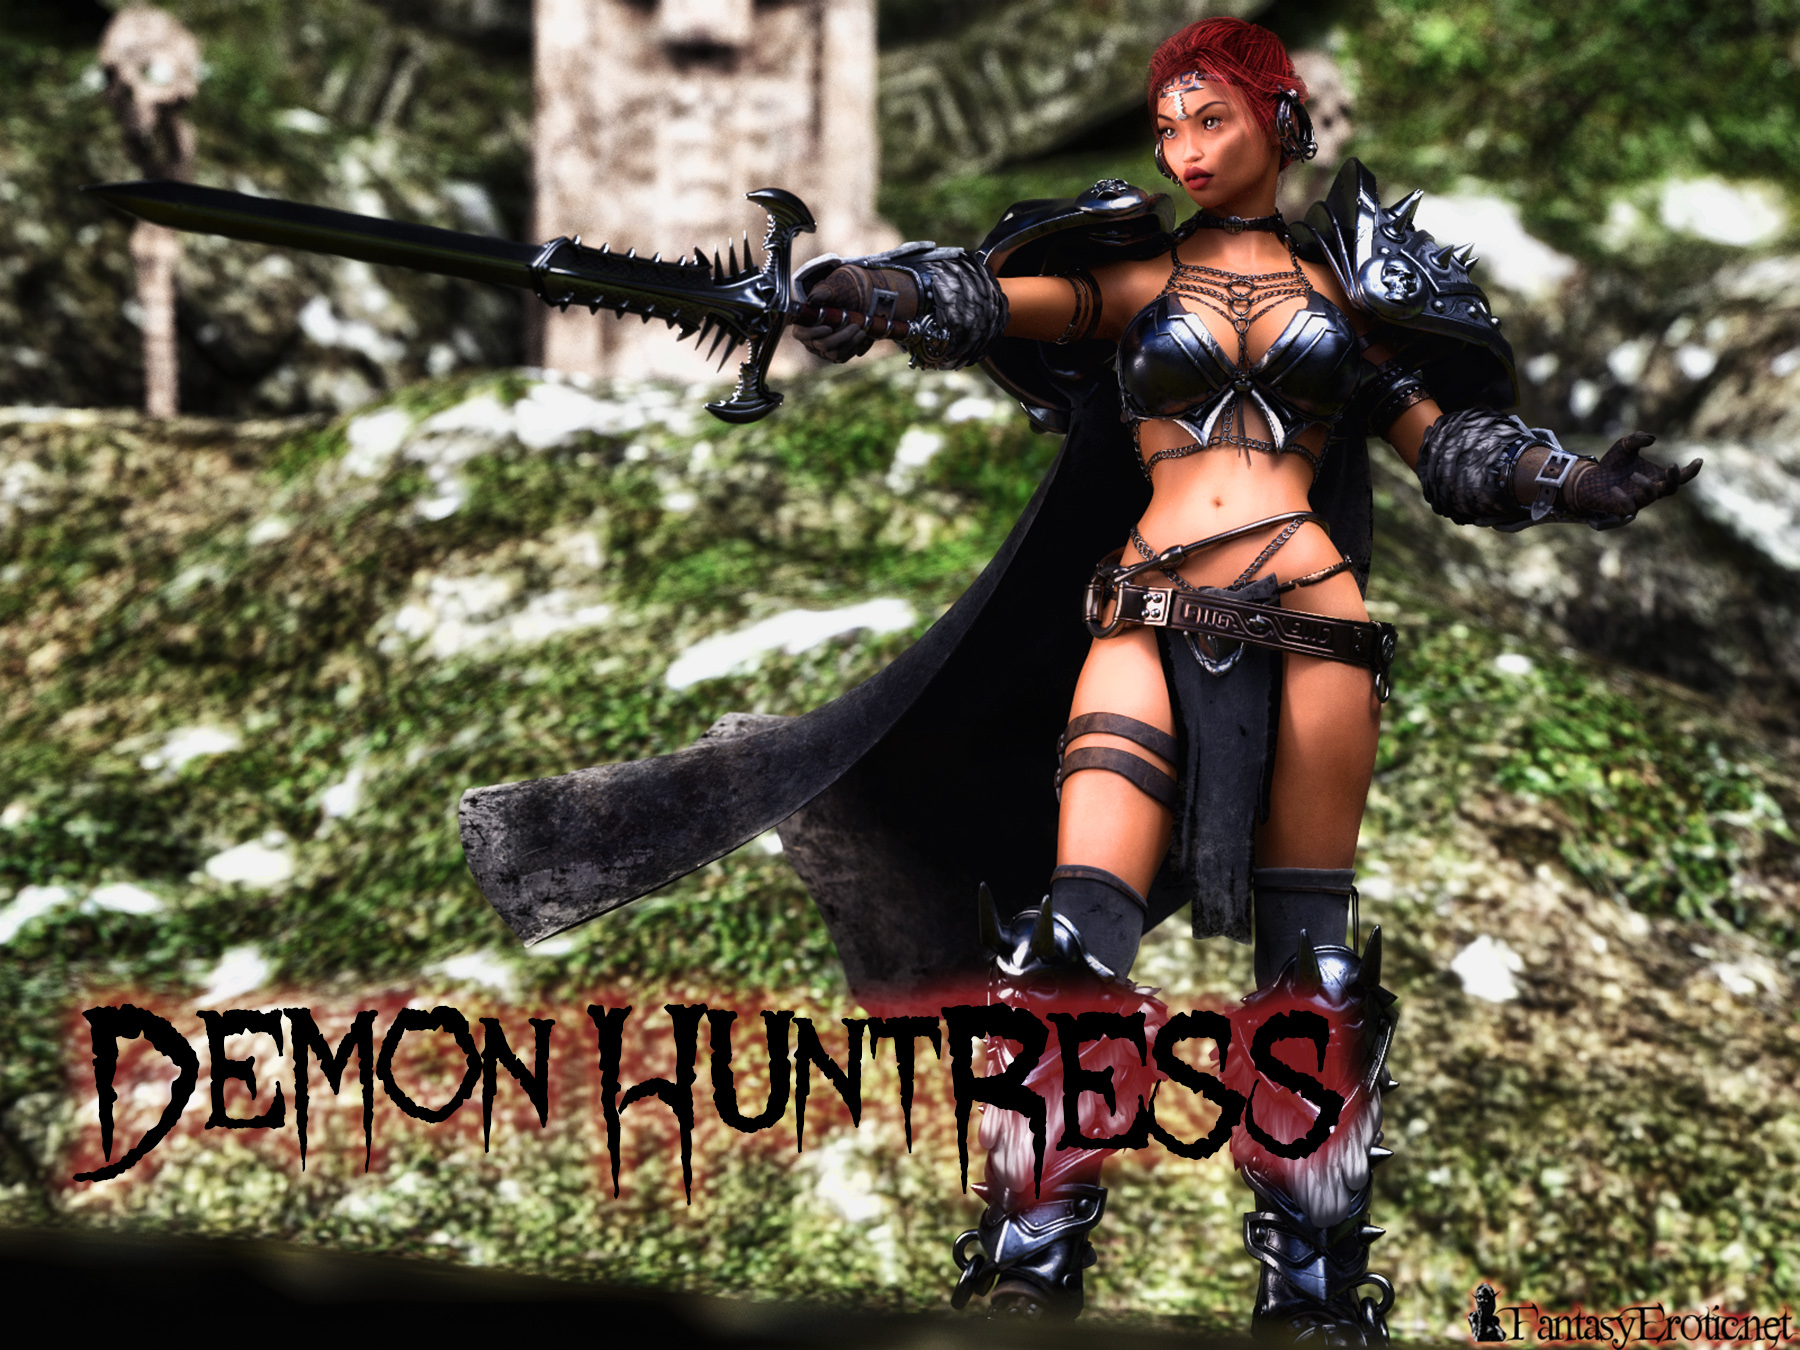 Sexy Demon Huntress Fantasy Wallpaper